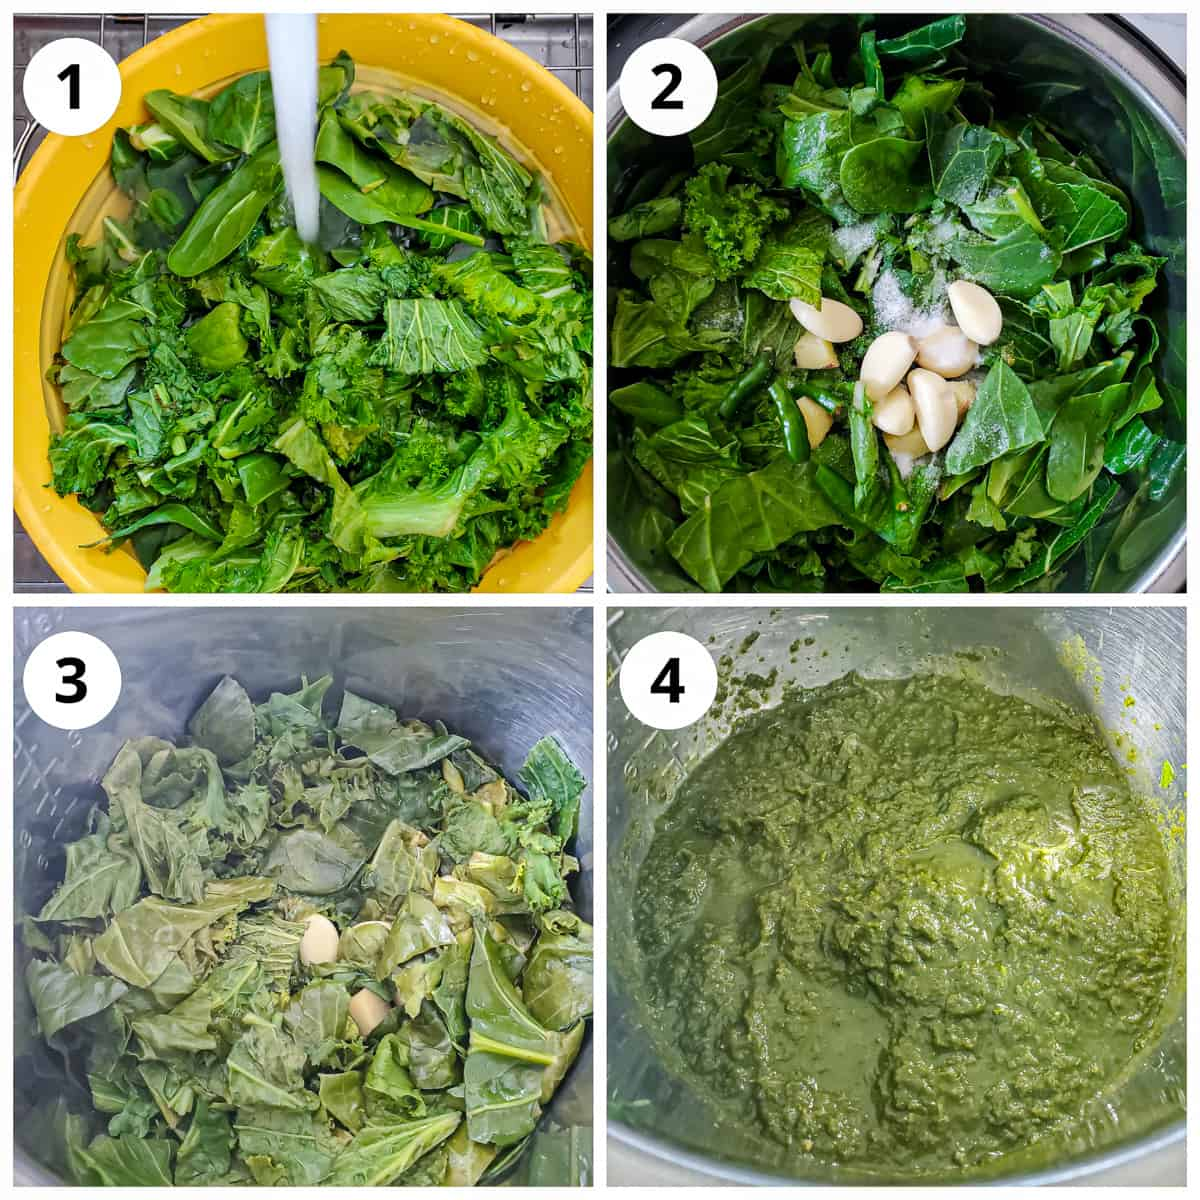 steps to cook sarson ka saag (mustard greens) and grinding into coarse paste